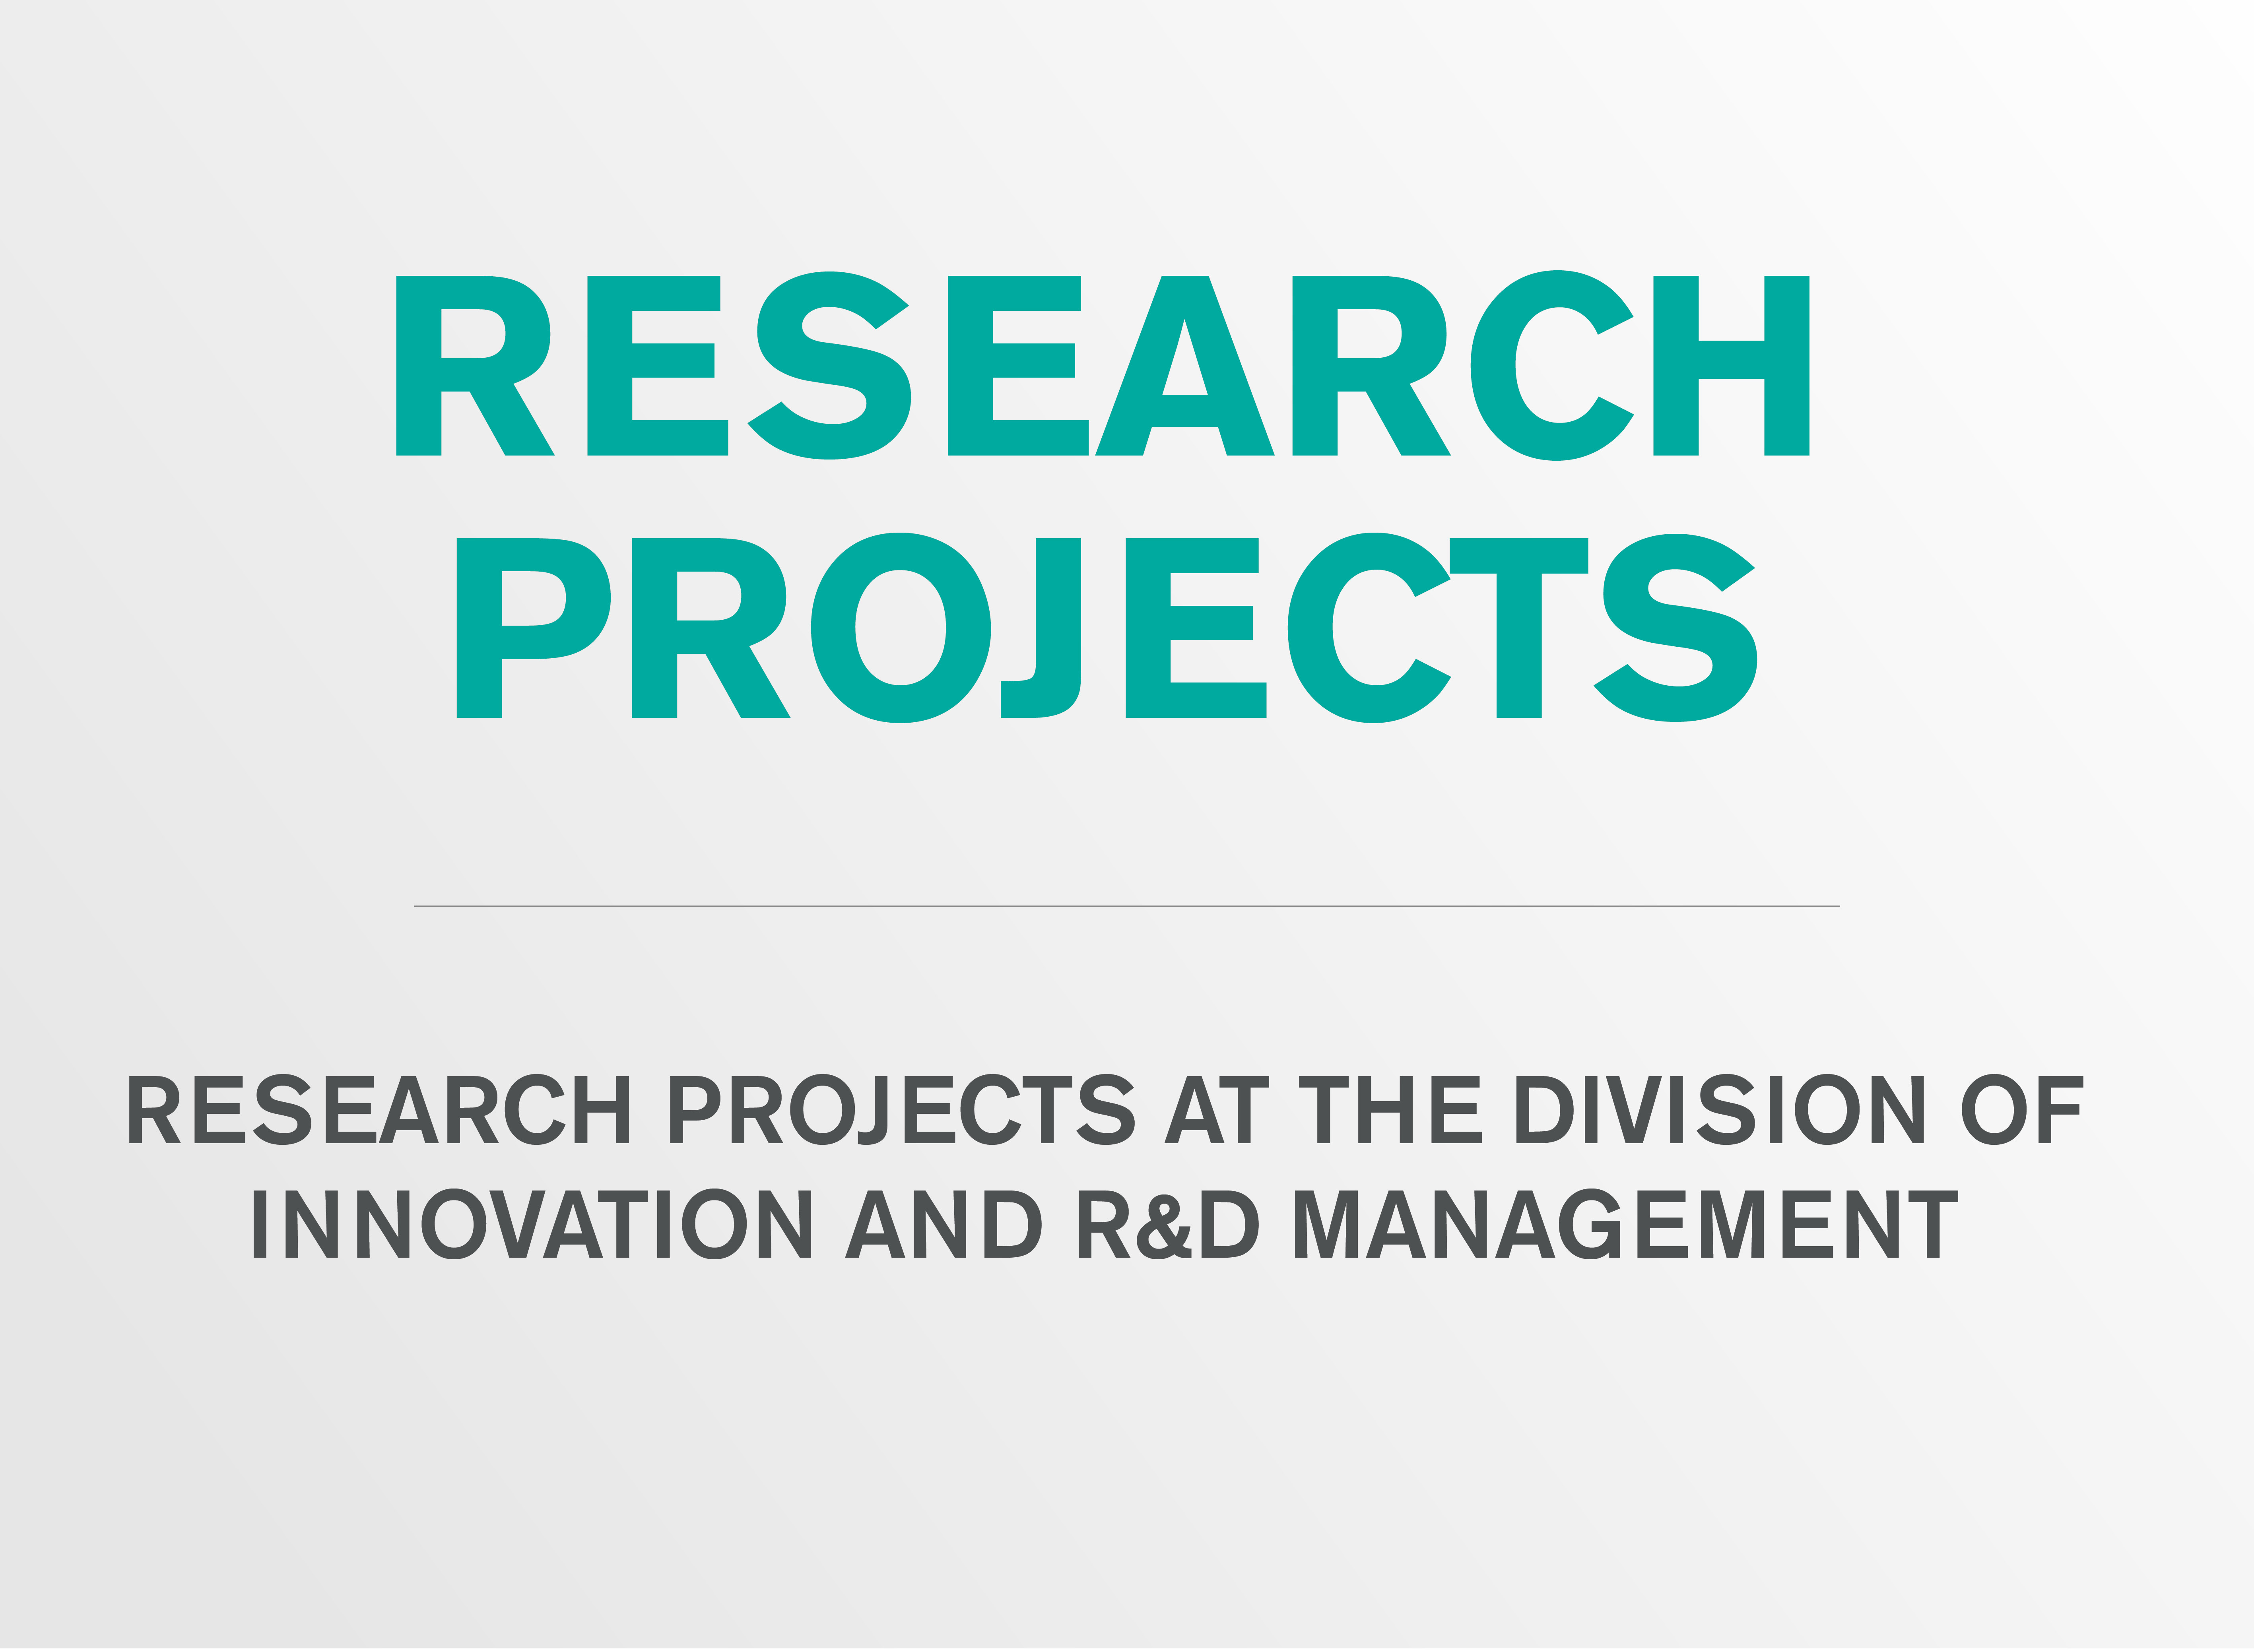 Research projects at the division of Innovation and R&D Management.